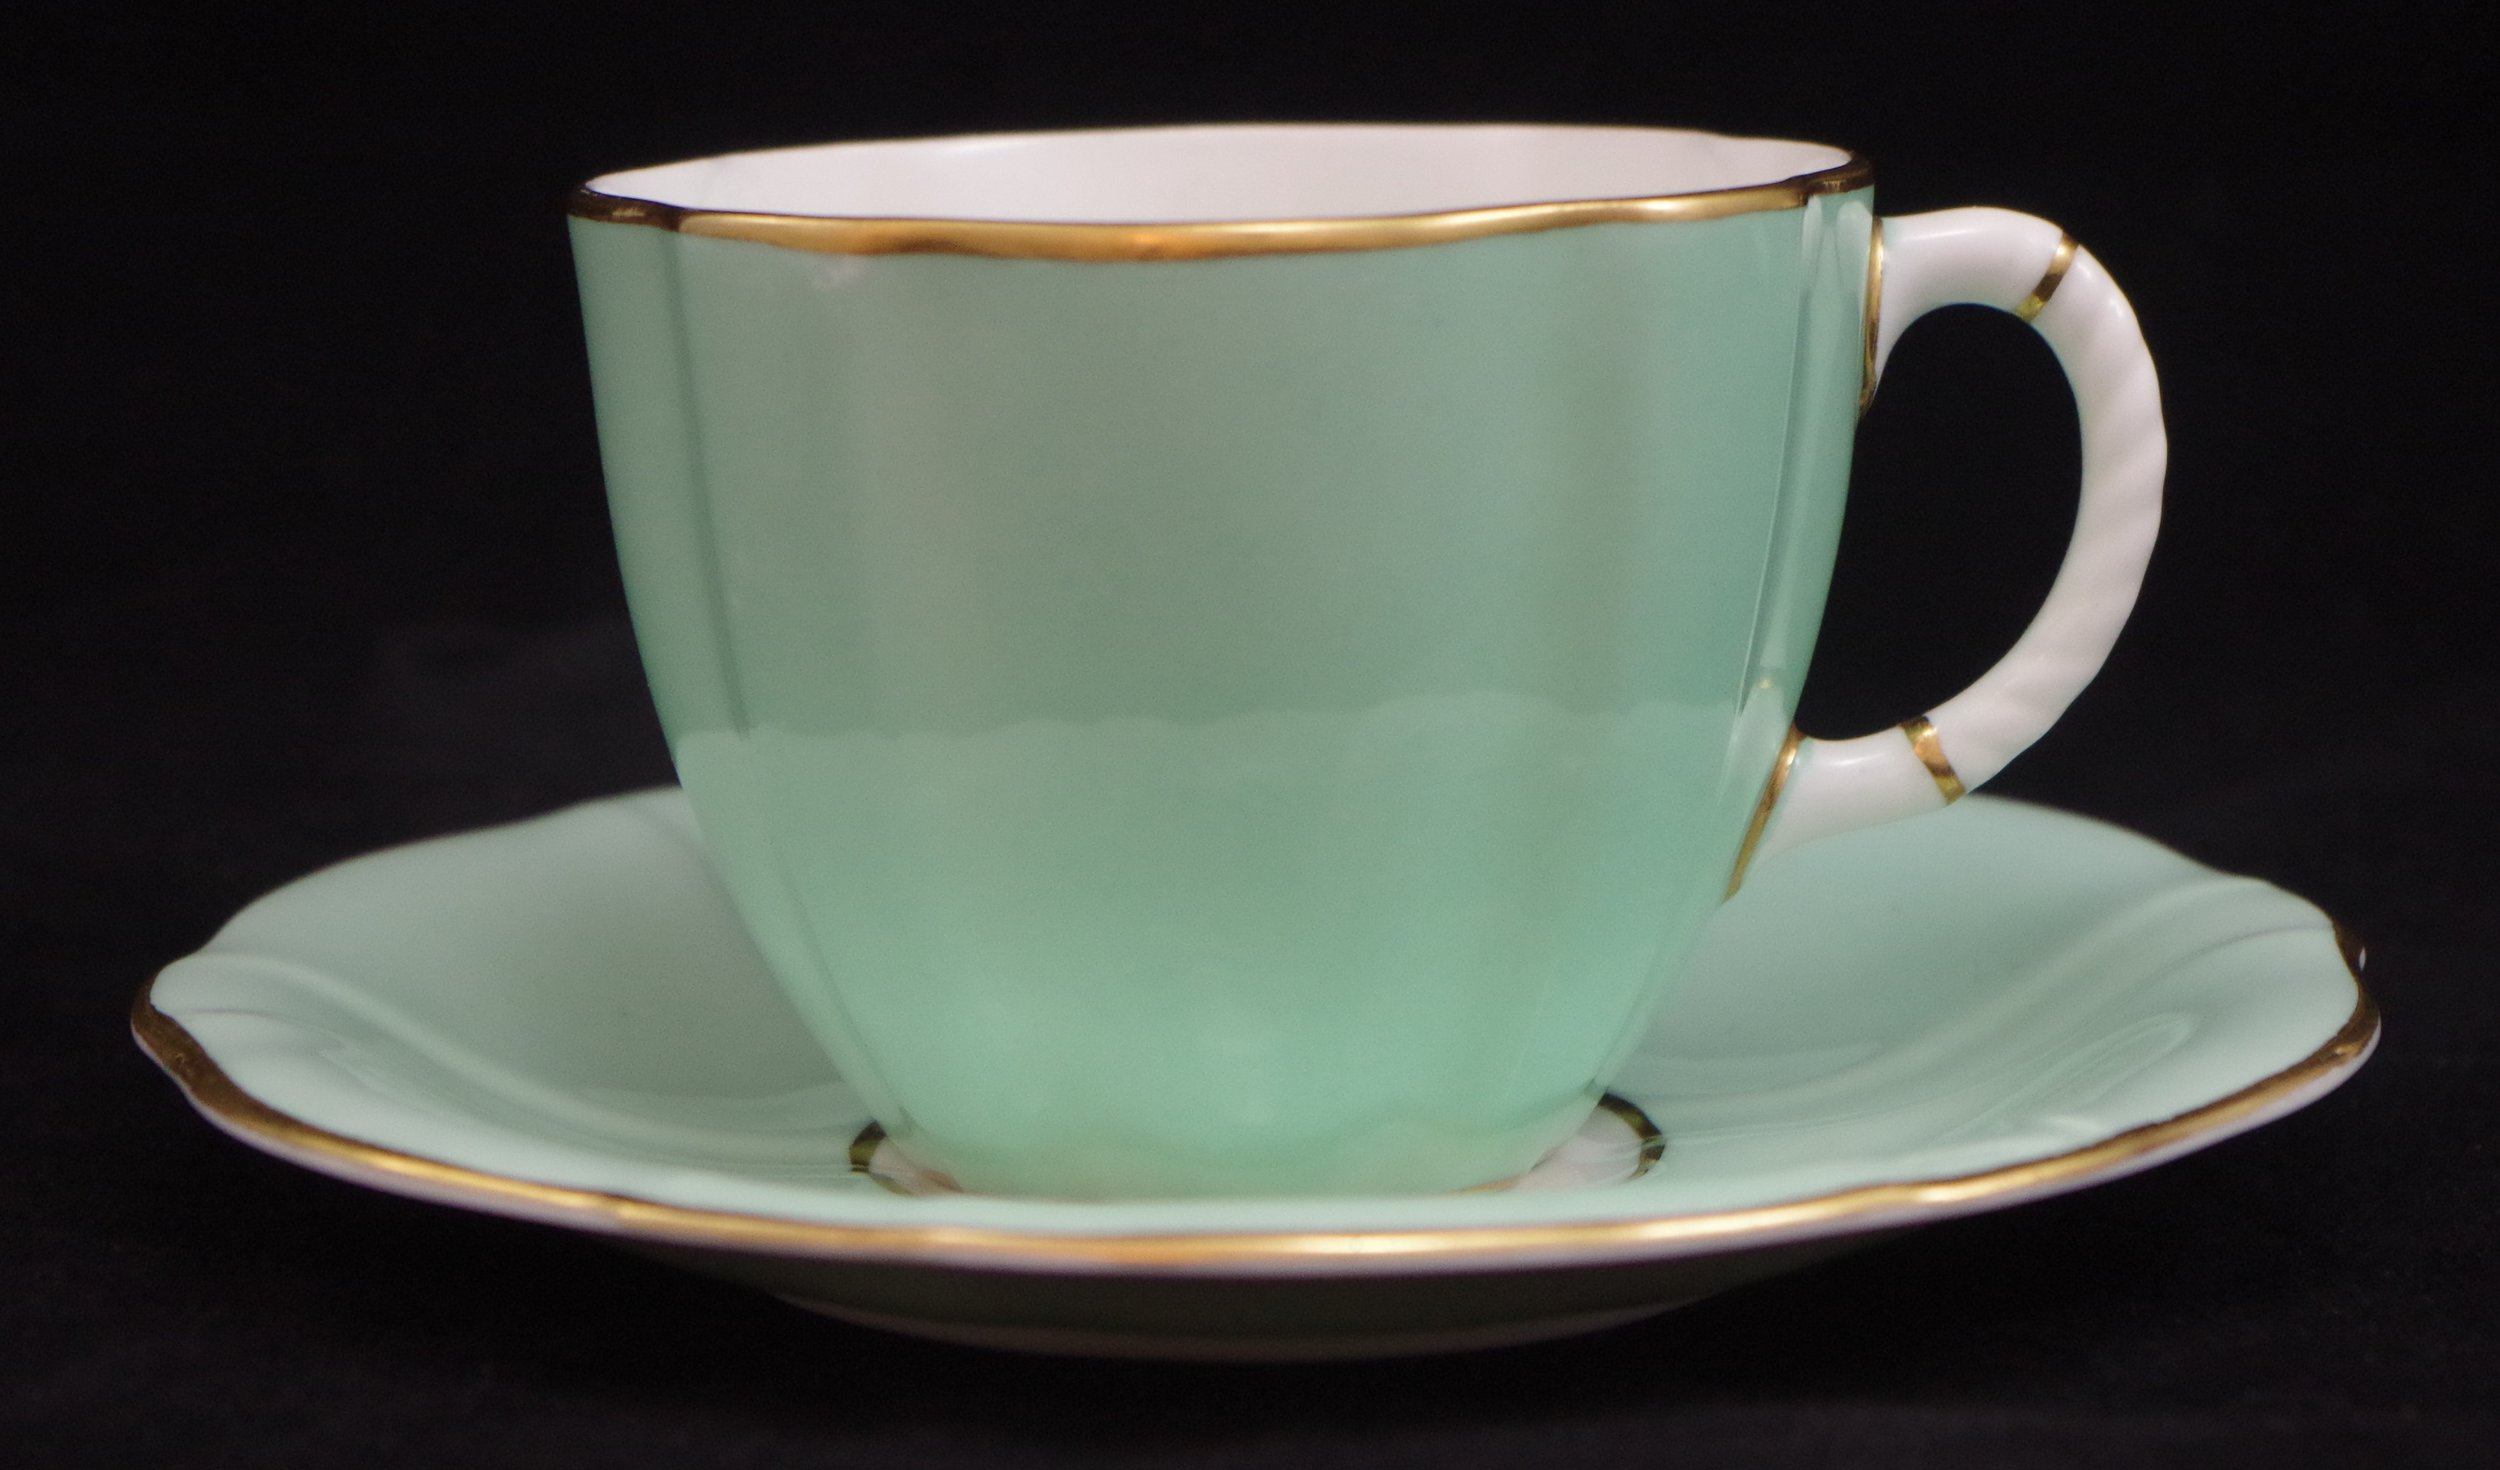 royal-crown-derby-surrey-shape-teacup-and saucer-celadon-ground